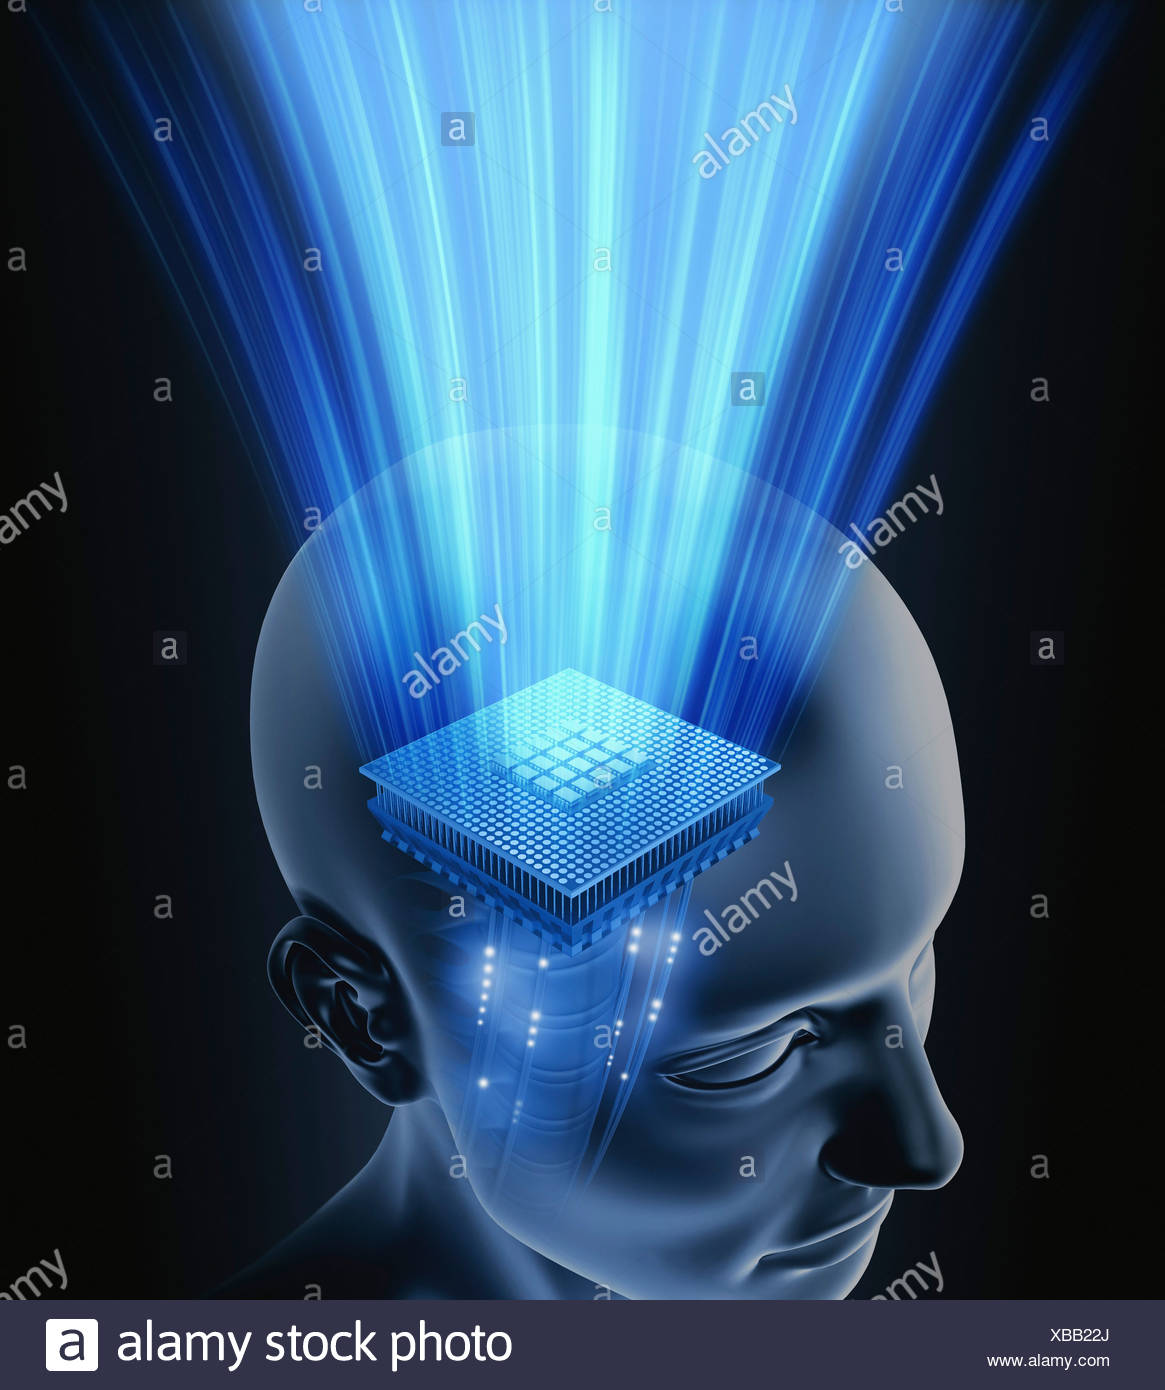 Artificial intelligence, conceptual image - Stock Image